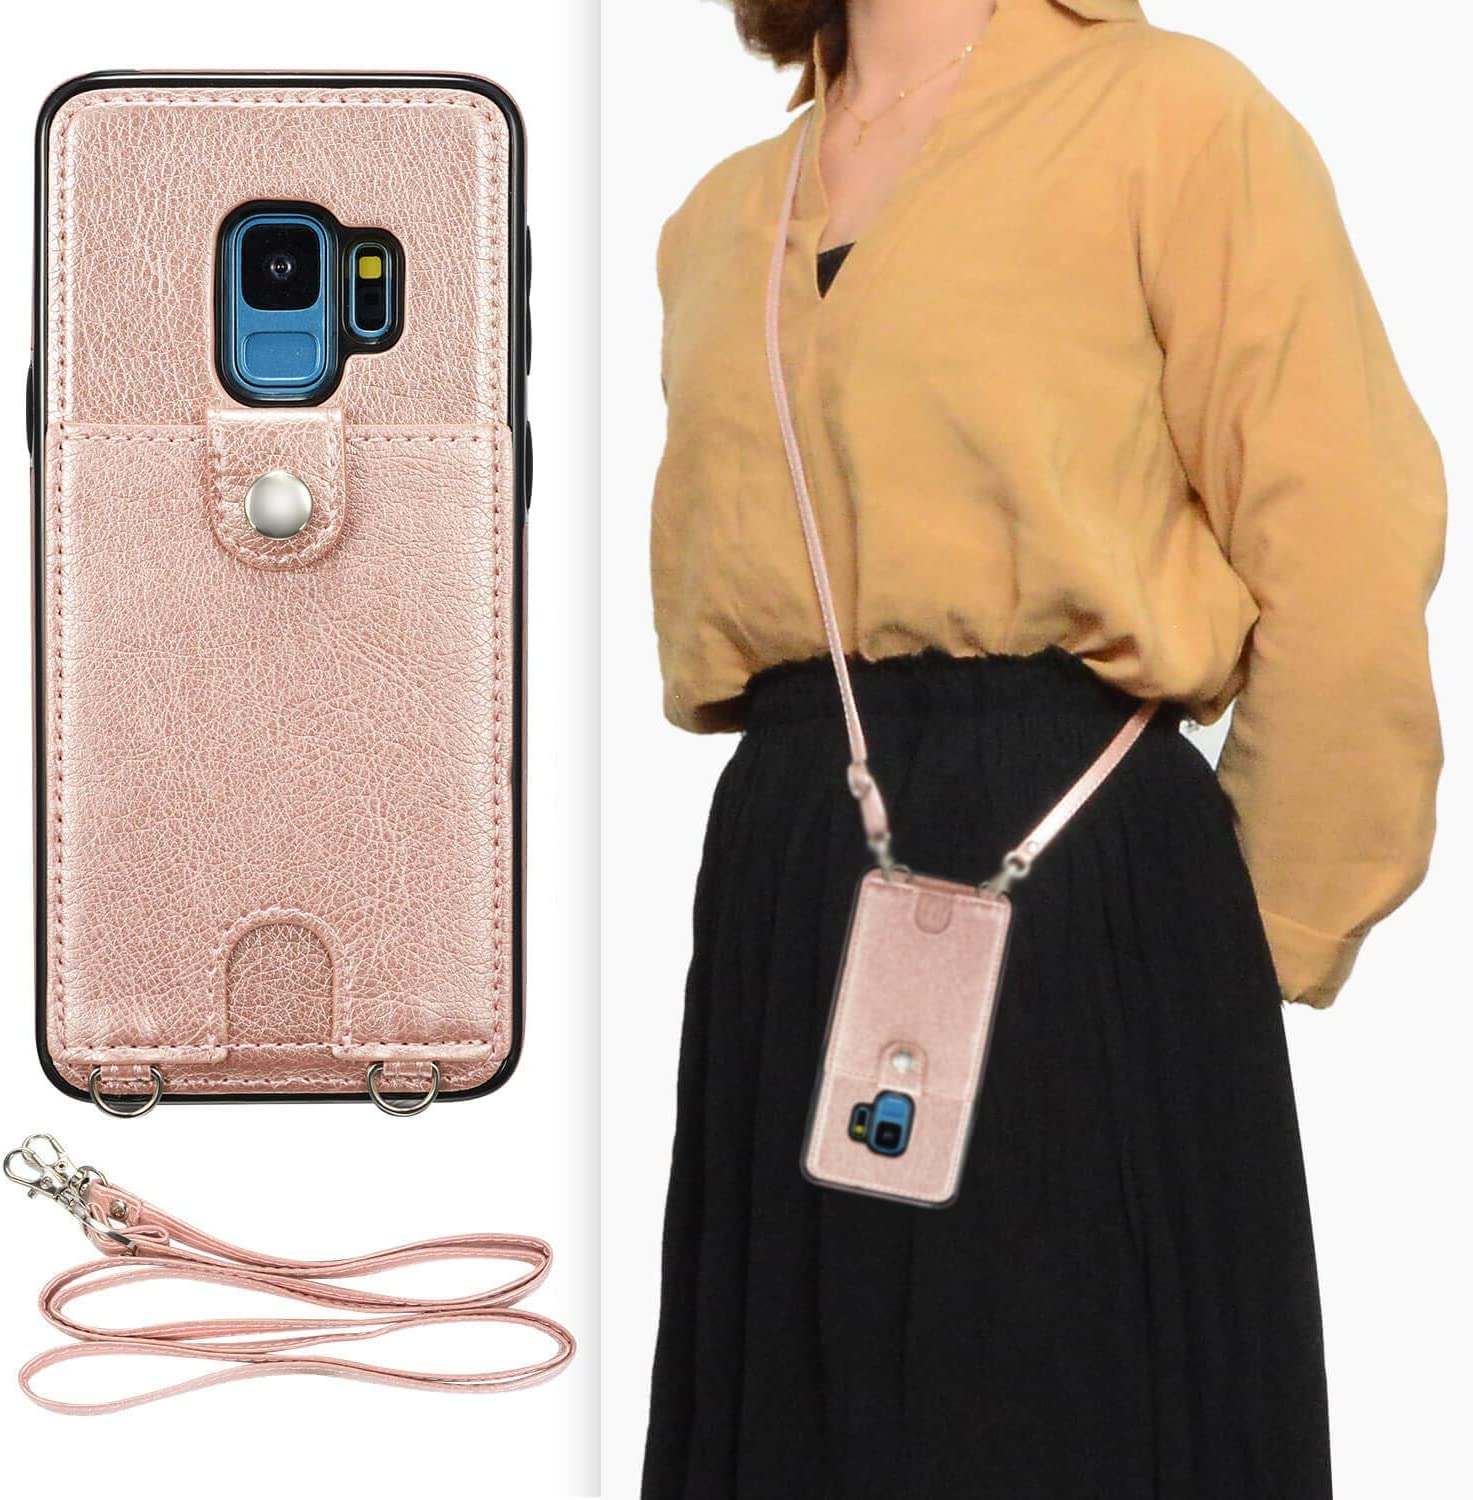 DEFBSC Samsung Galaxy S9 Crossbody Wallet Case,Premium Leather Case with Detachable Adjustable Crossbody Strap and Credit Card Slots for Samsung Galaxy S9 5.8 Inch-Rose Gold